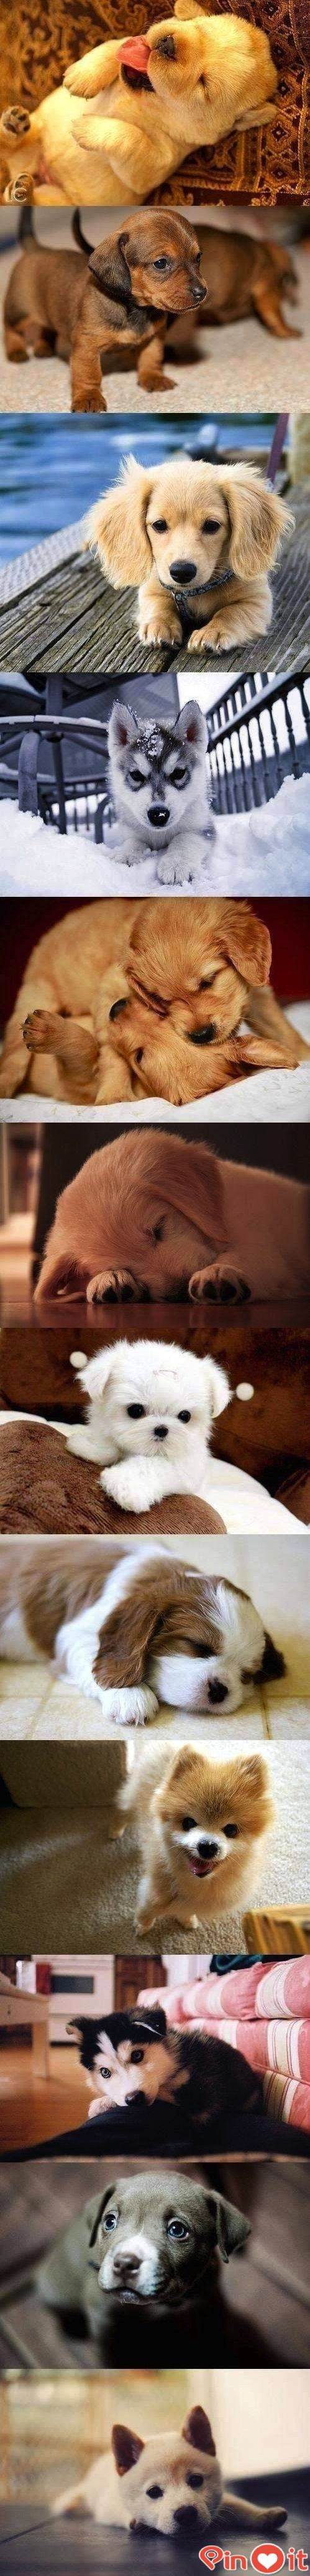 Community Post: 42 Puppies You'll Want To Take Home With You